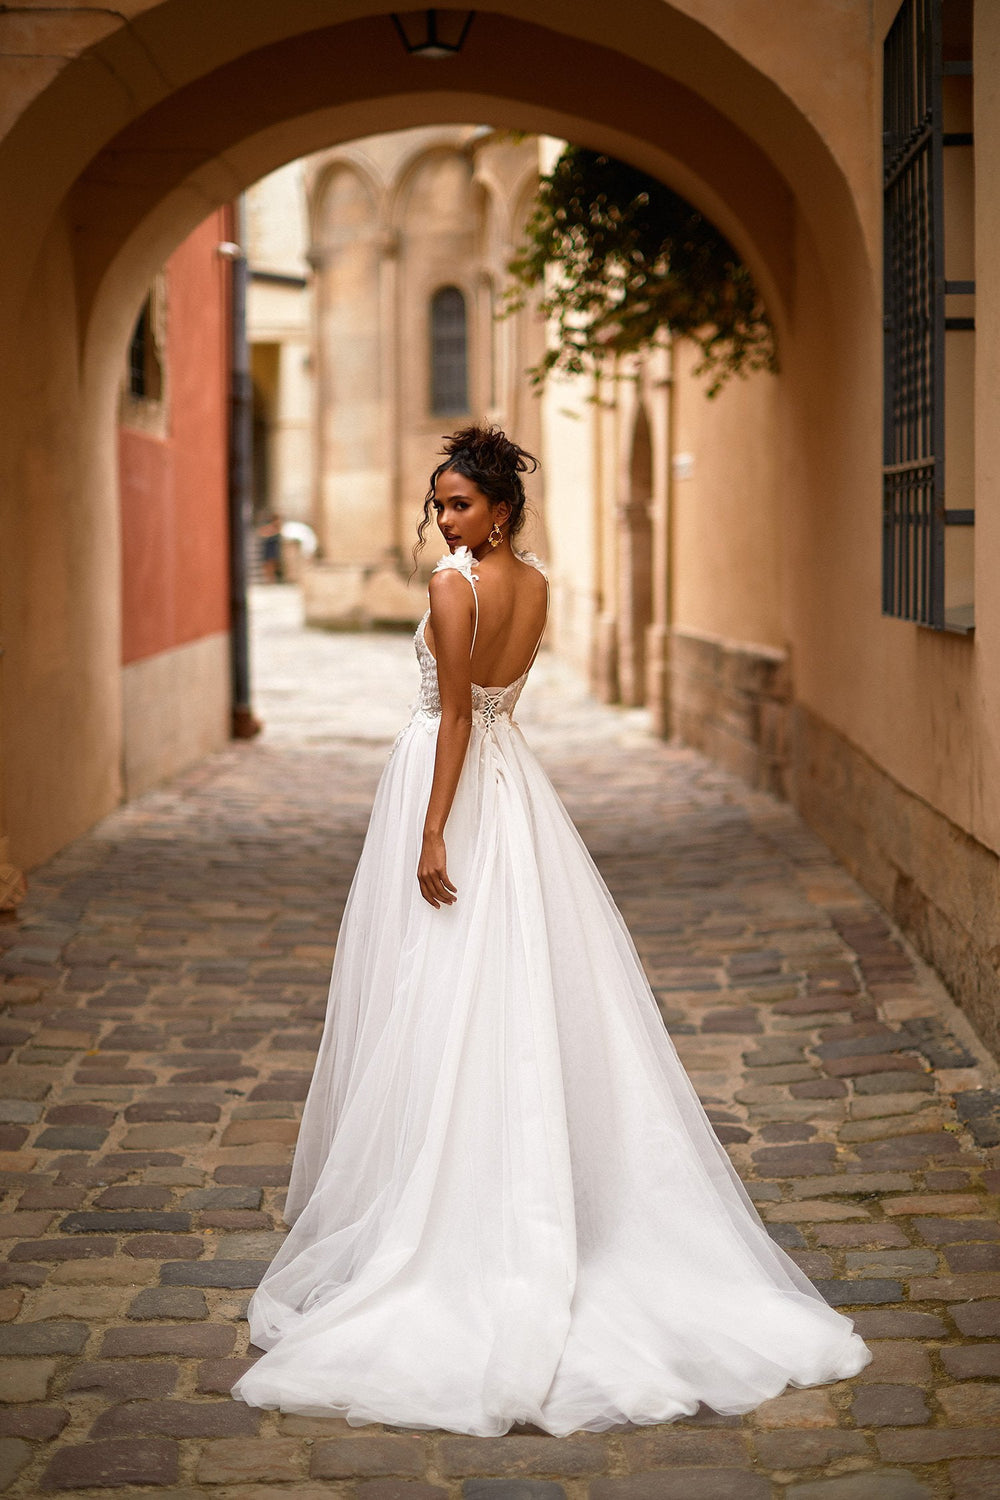 A&N Eliah - White Embellished Boho Bridal Gown with Plunge Neck & Slit